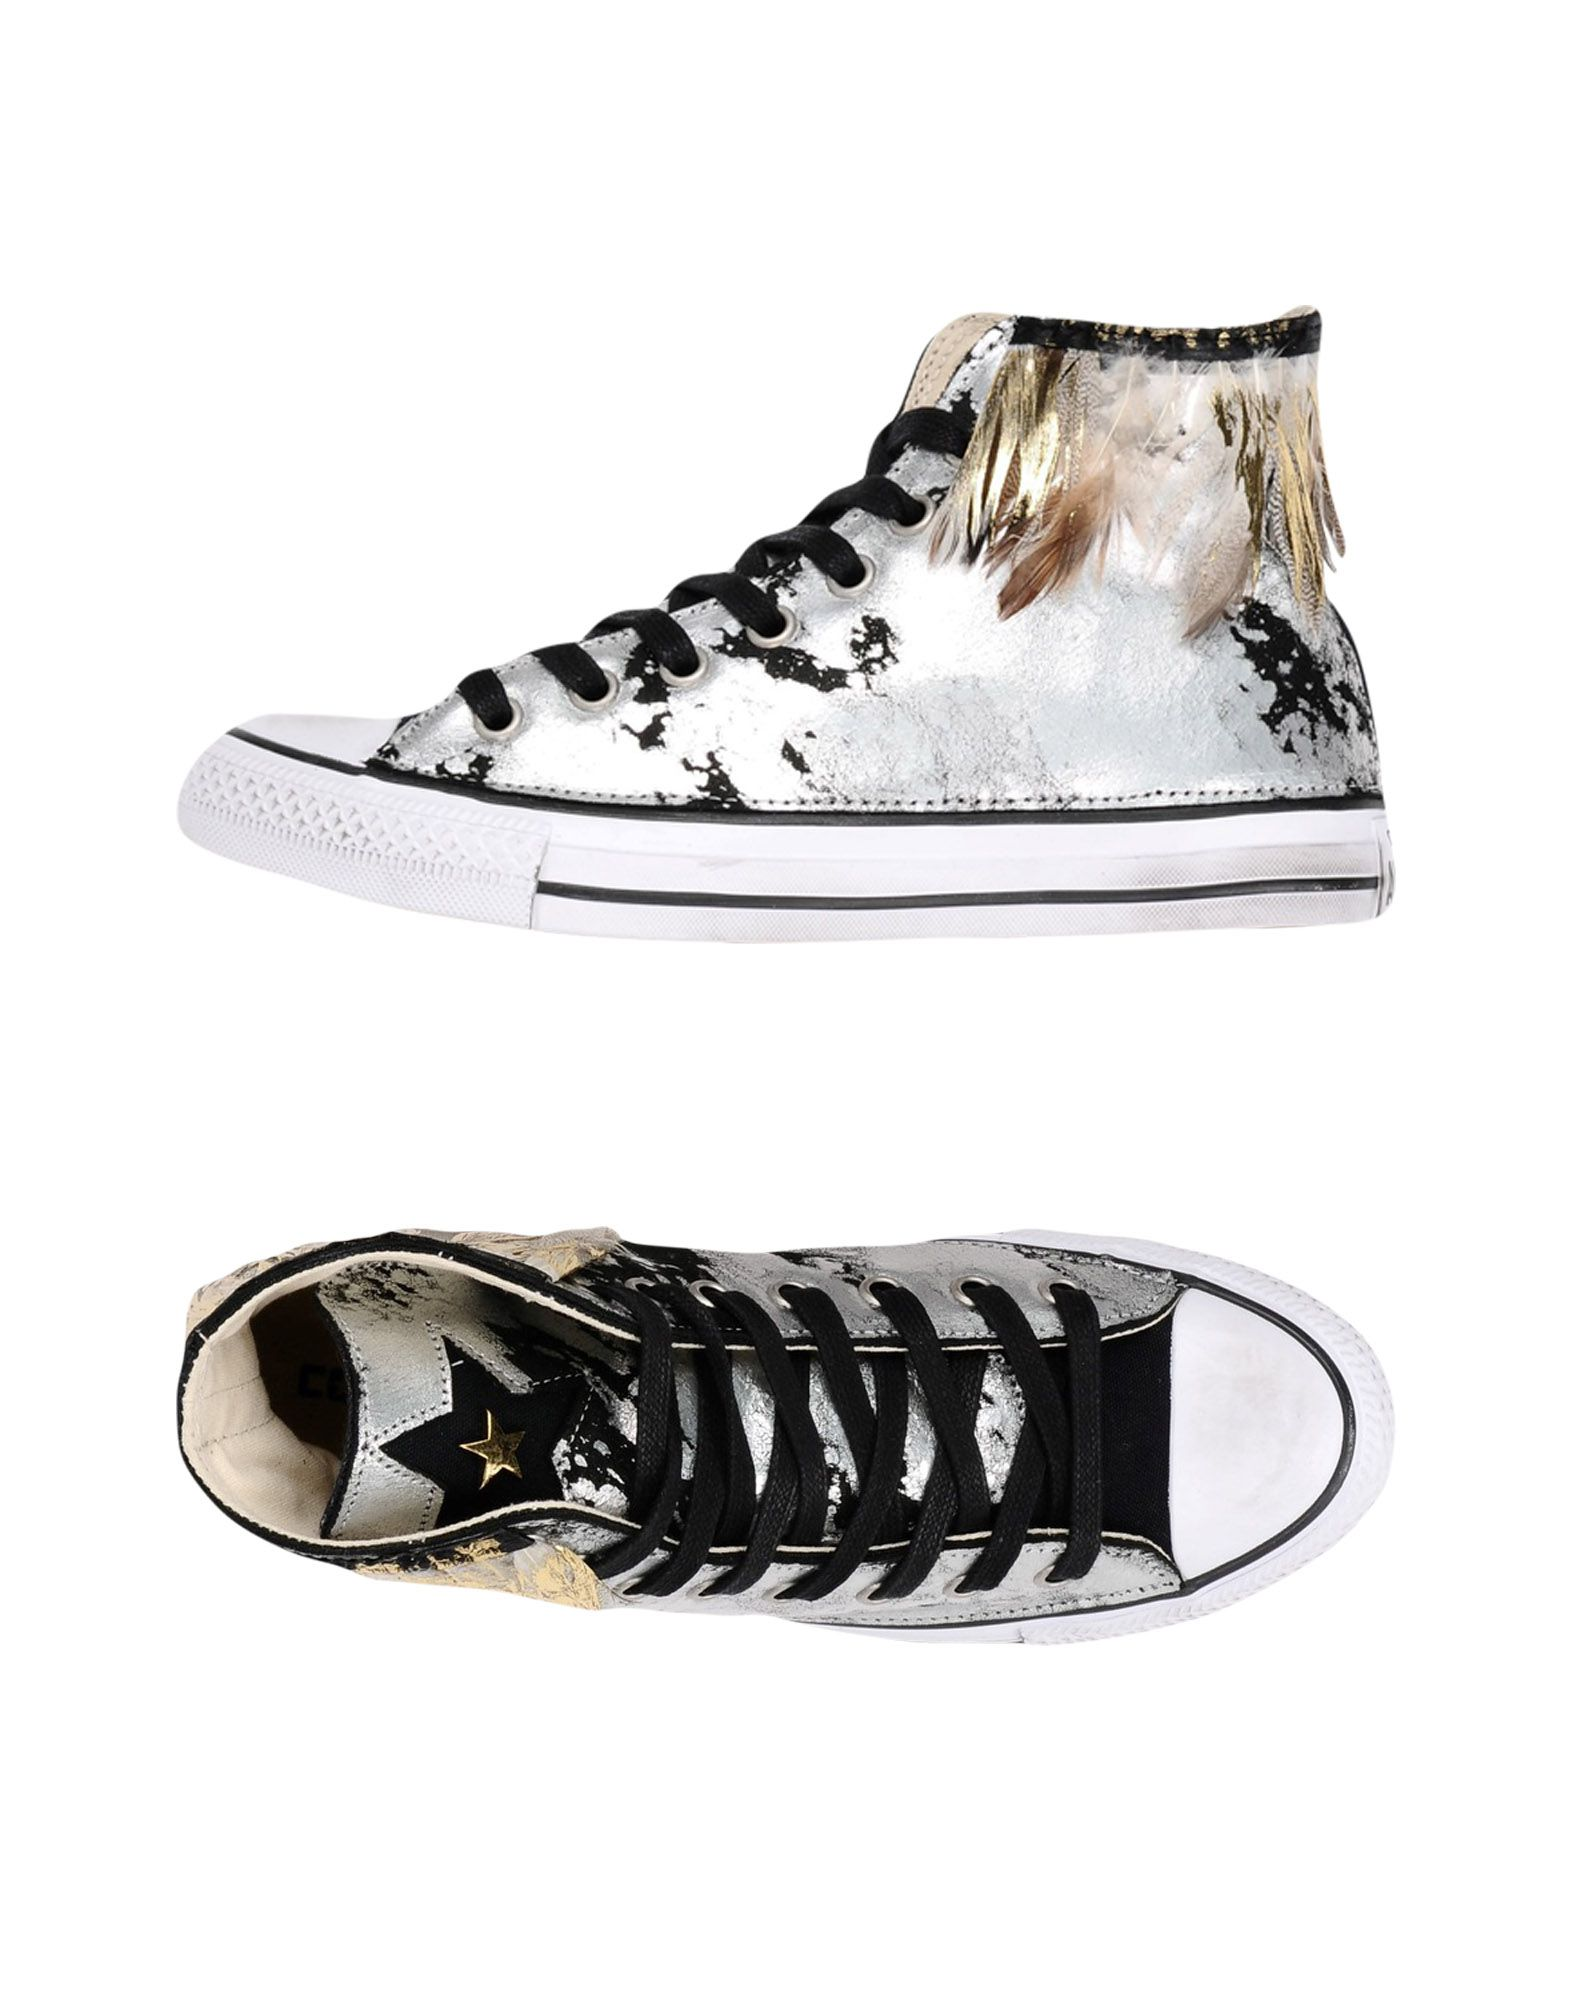 Sneakers Converse Limited Edition Ctas Hi Canvas/Leather Ltd - Donna - 11394494UB